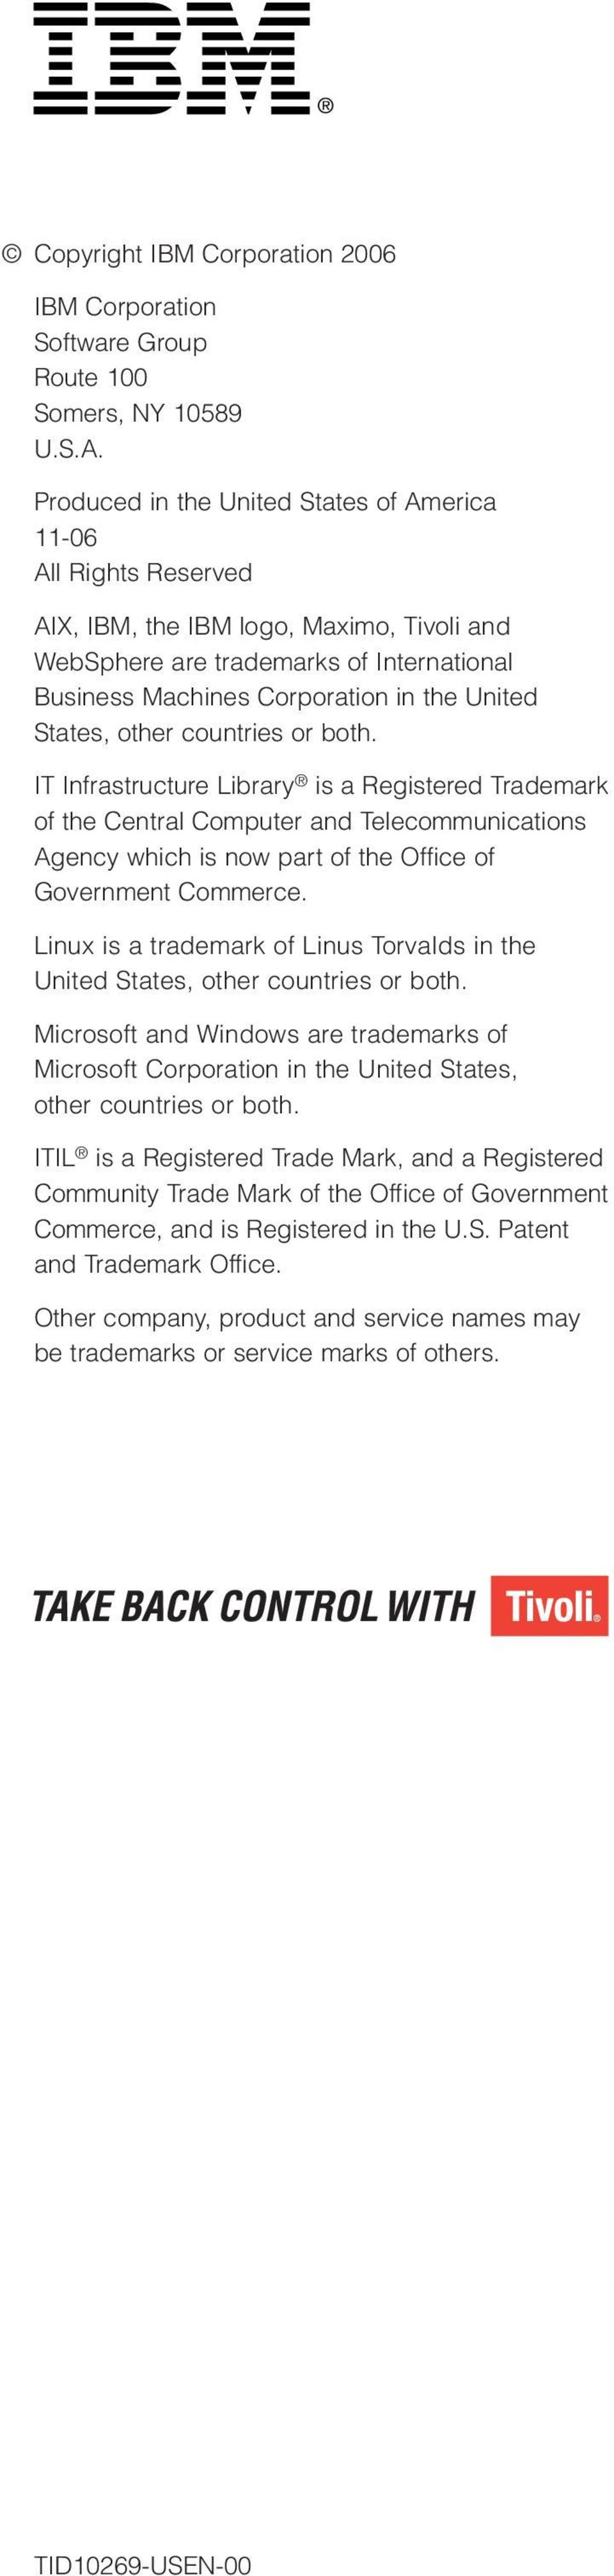 States, other countries or both. IT Infrastructure Library is a Registered Trademark of the Central Computer and Telecommunications Agency which is now part of the Office of Government Commerce.